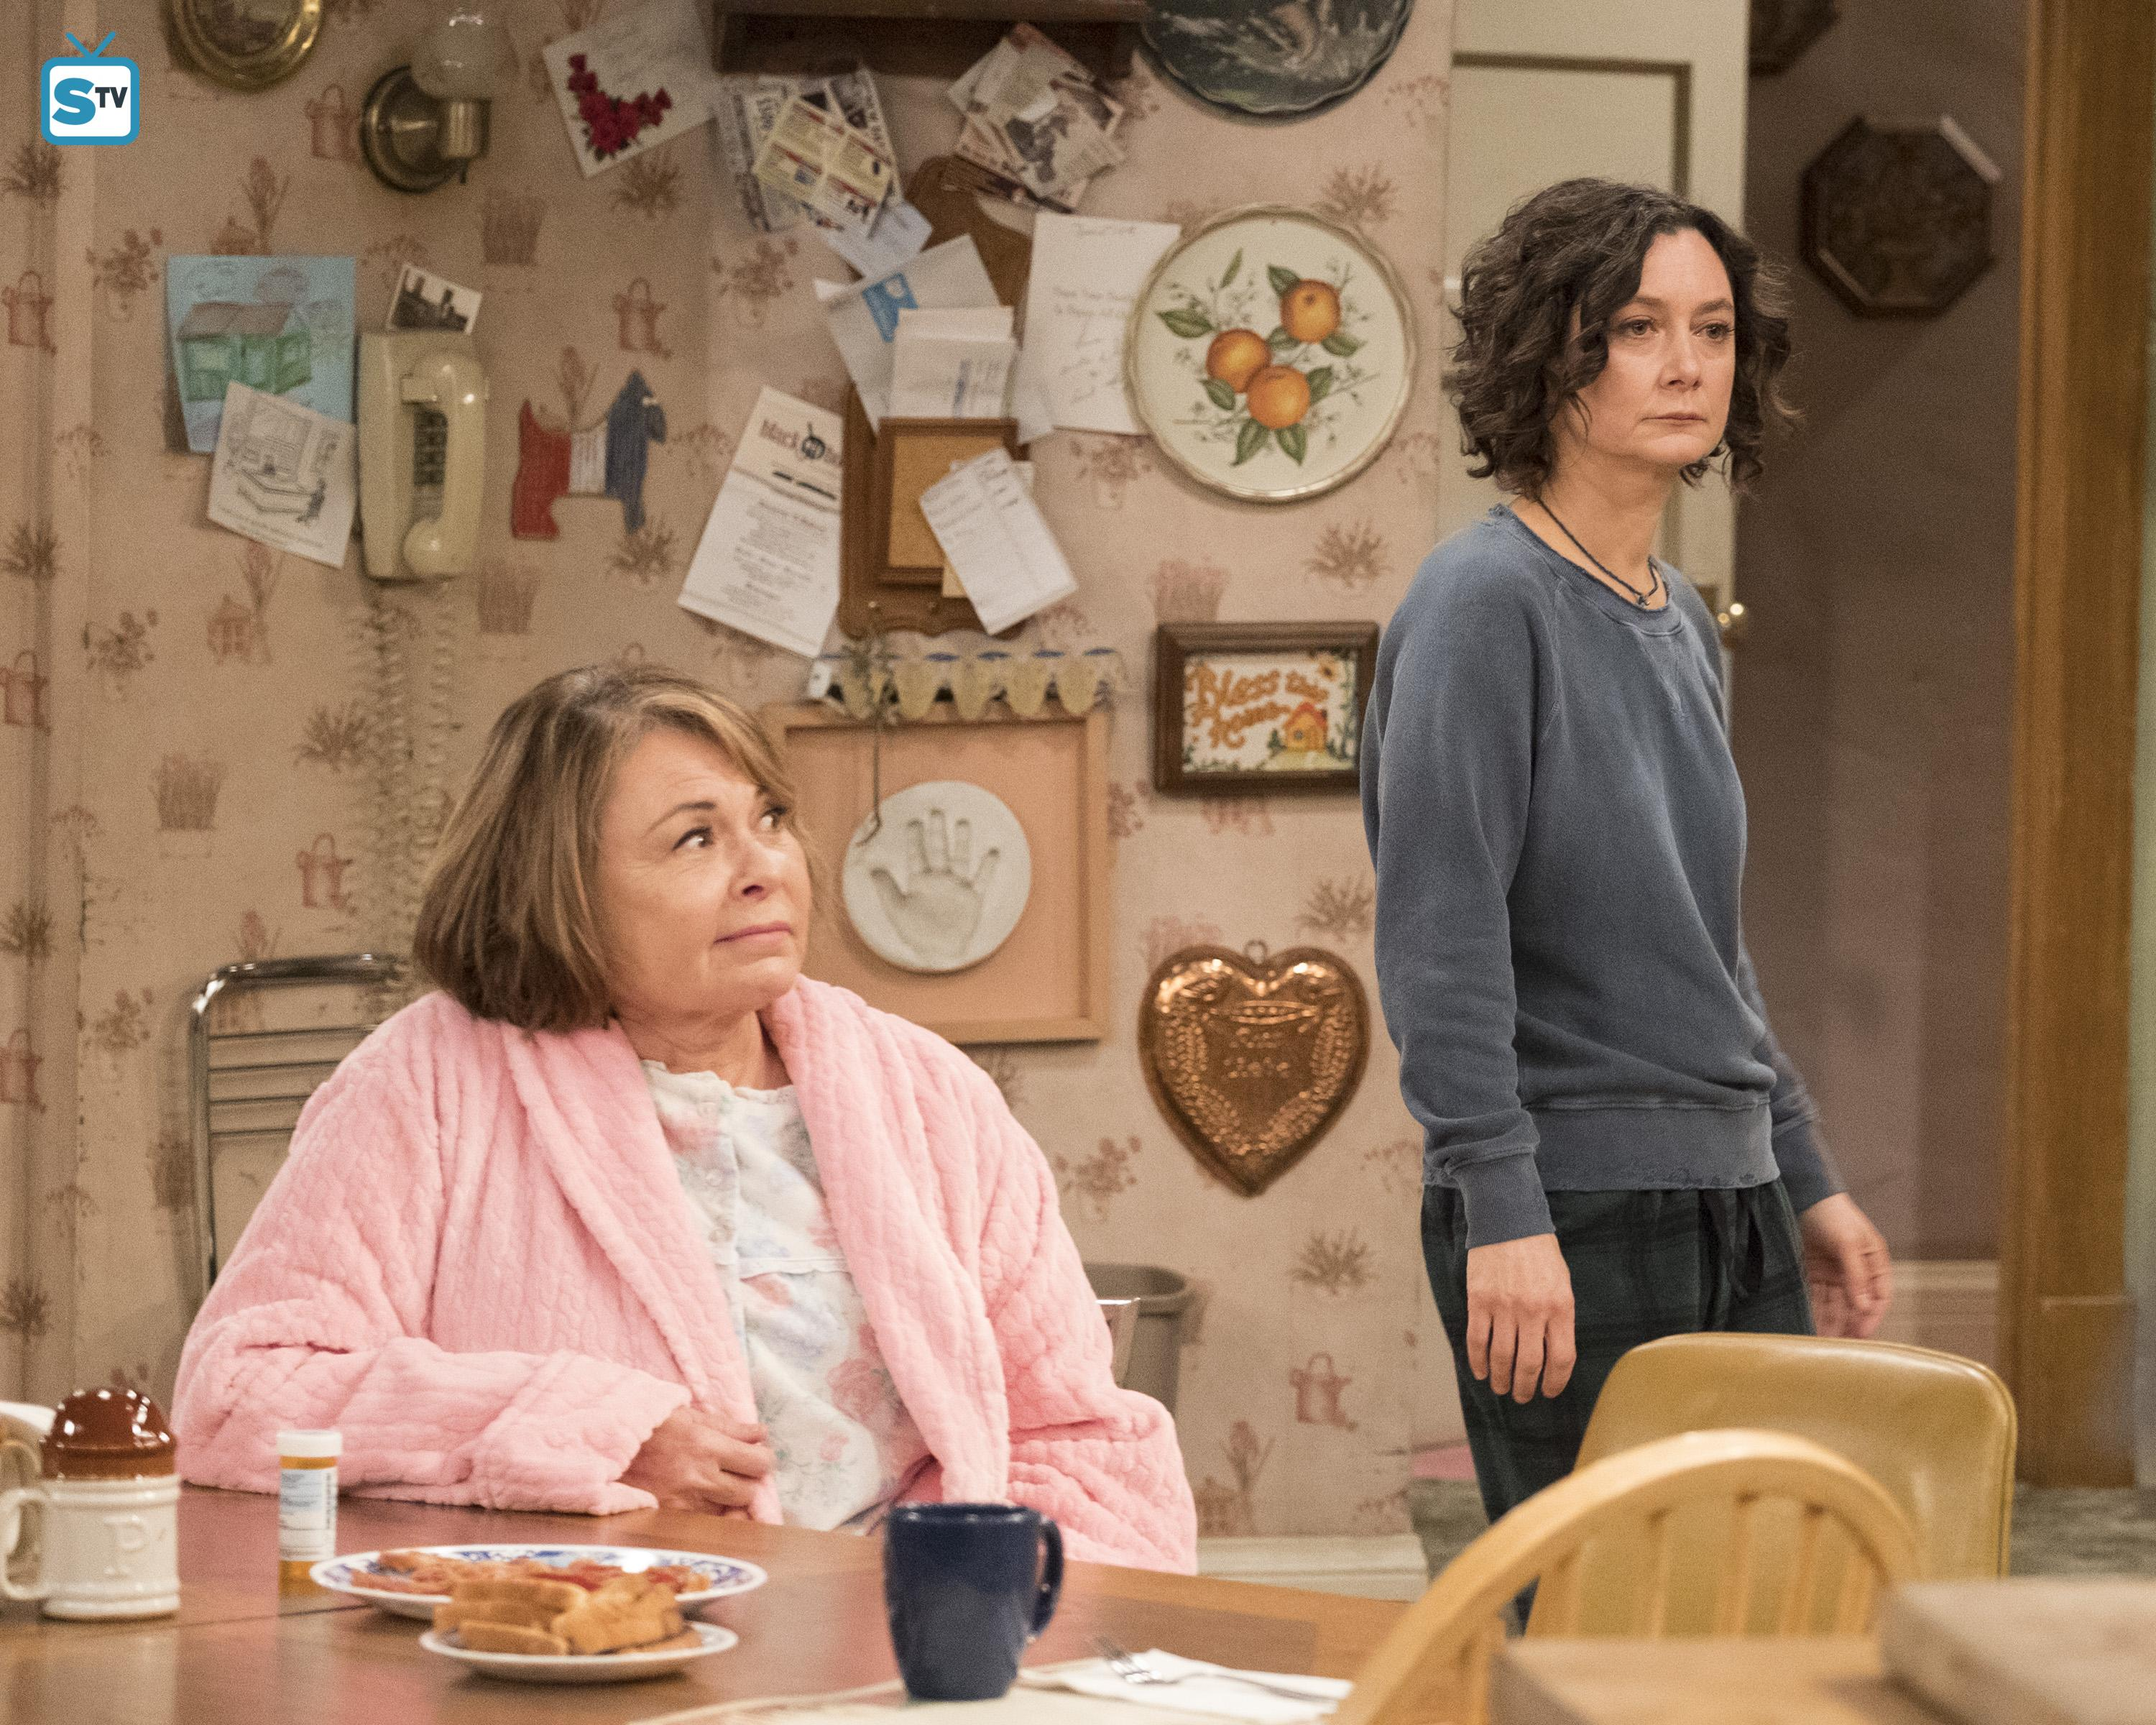 10x08 - Netflix and Pill - Roseanne and Darlene